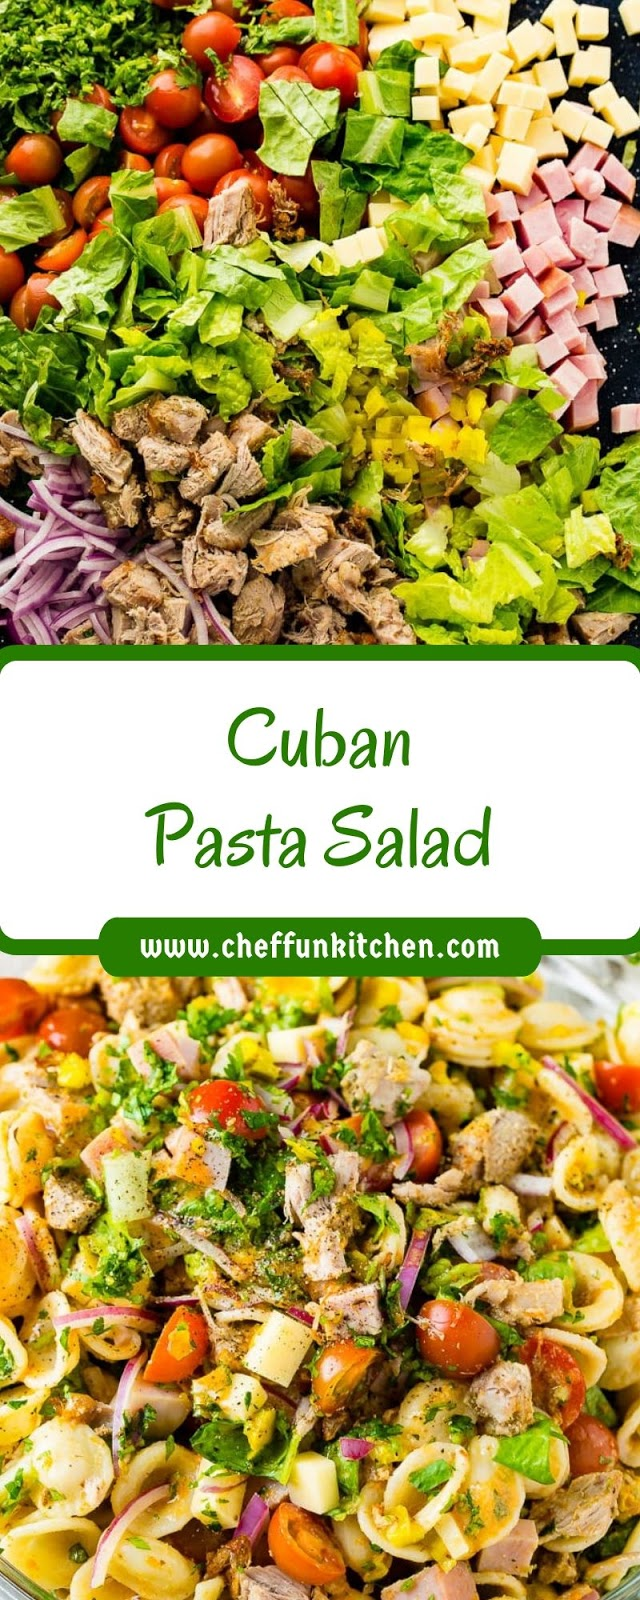 Cuban Pasta Salad